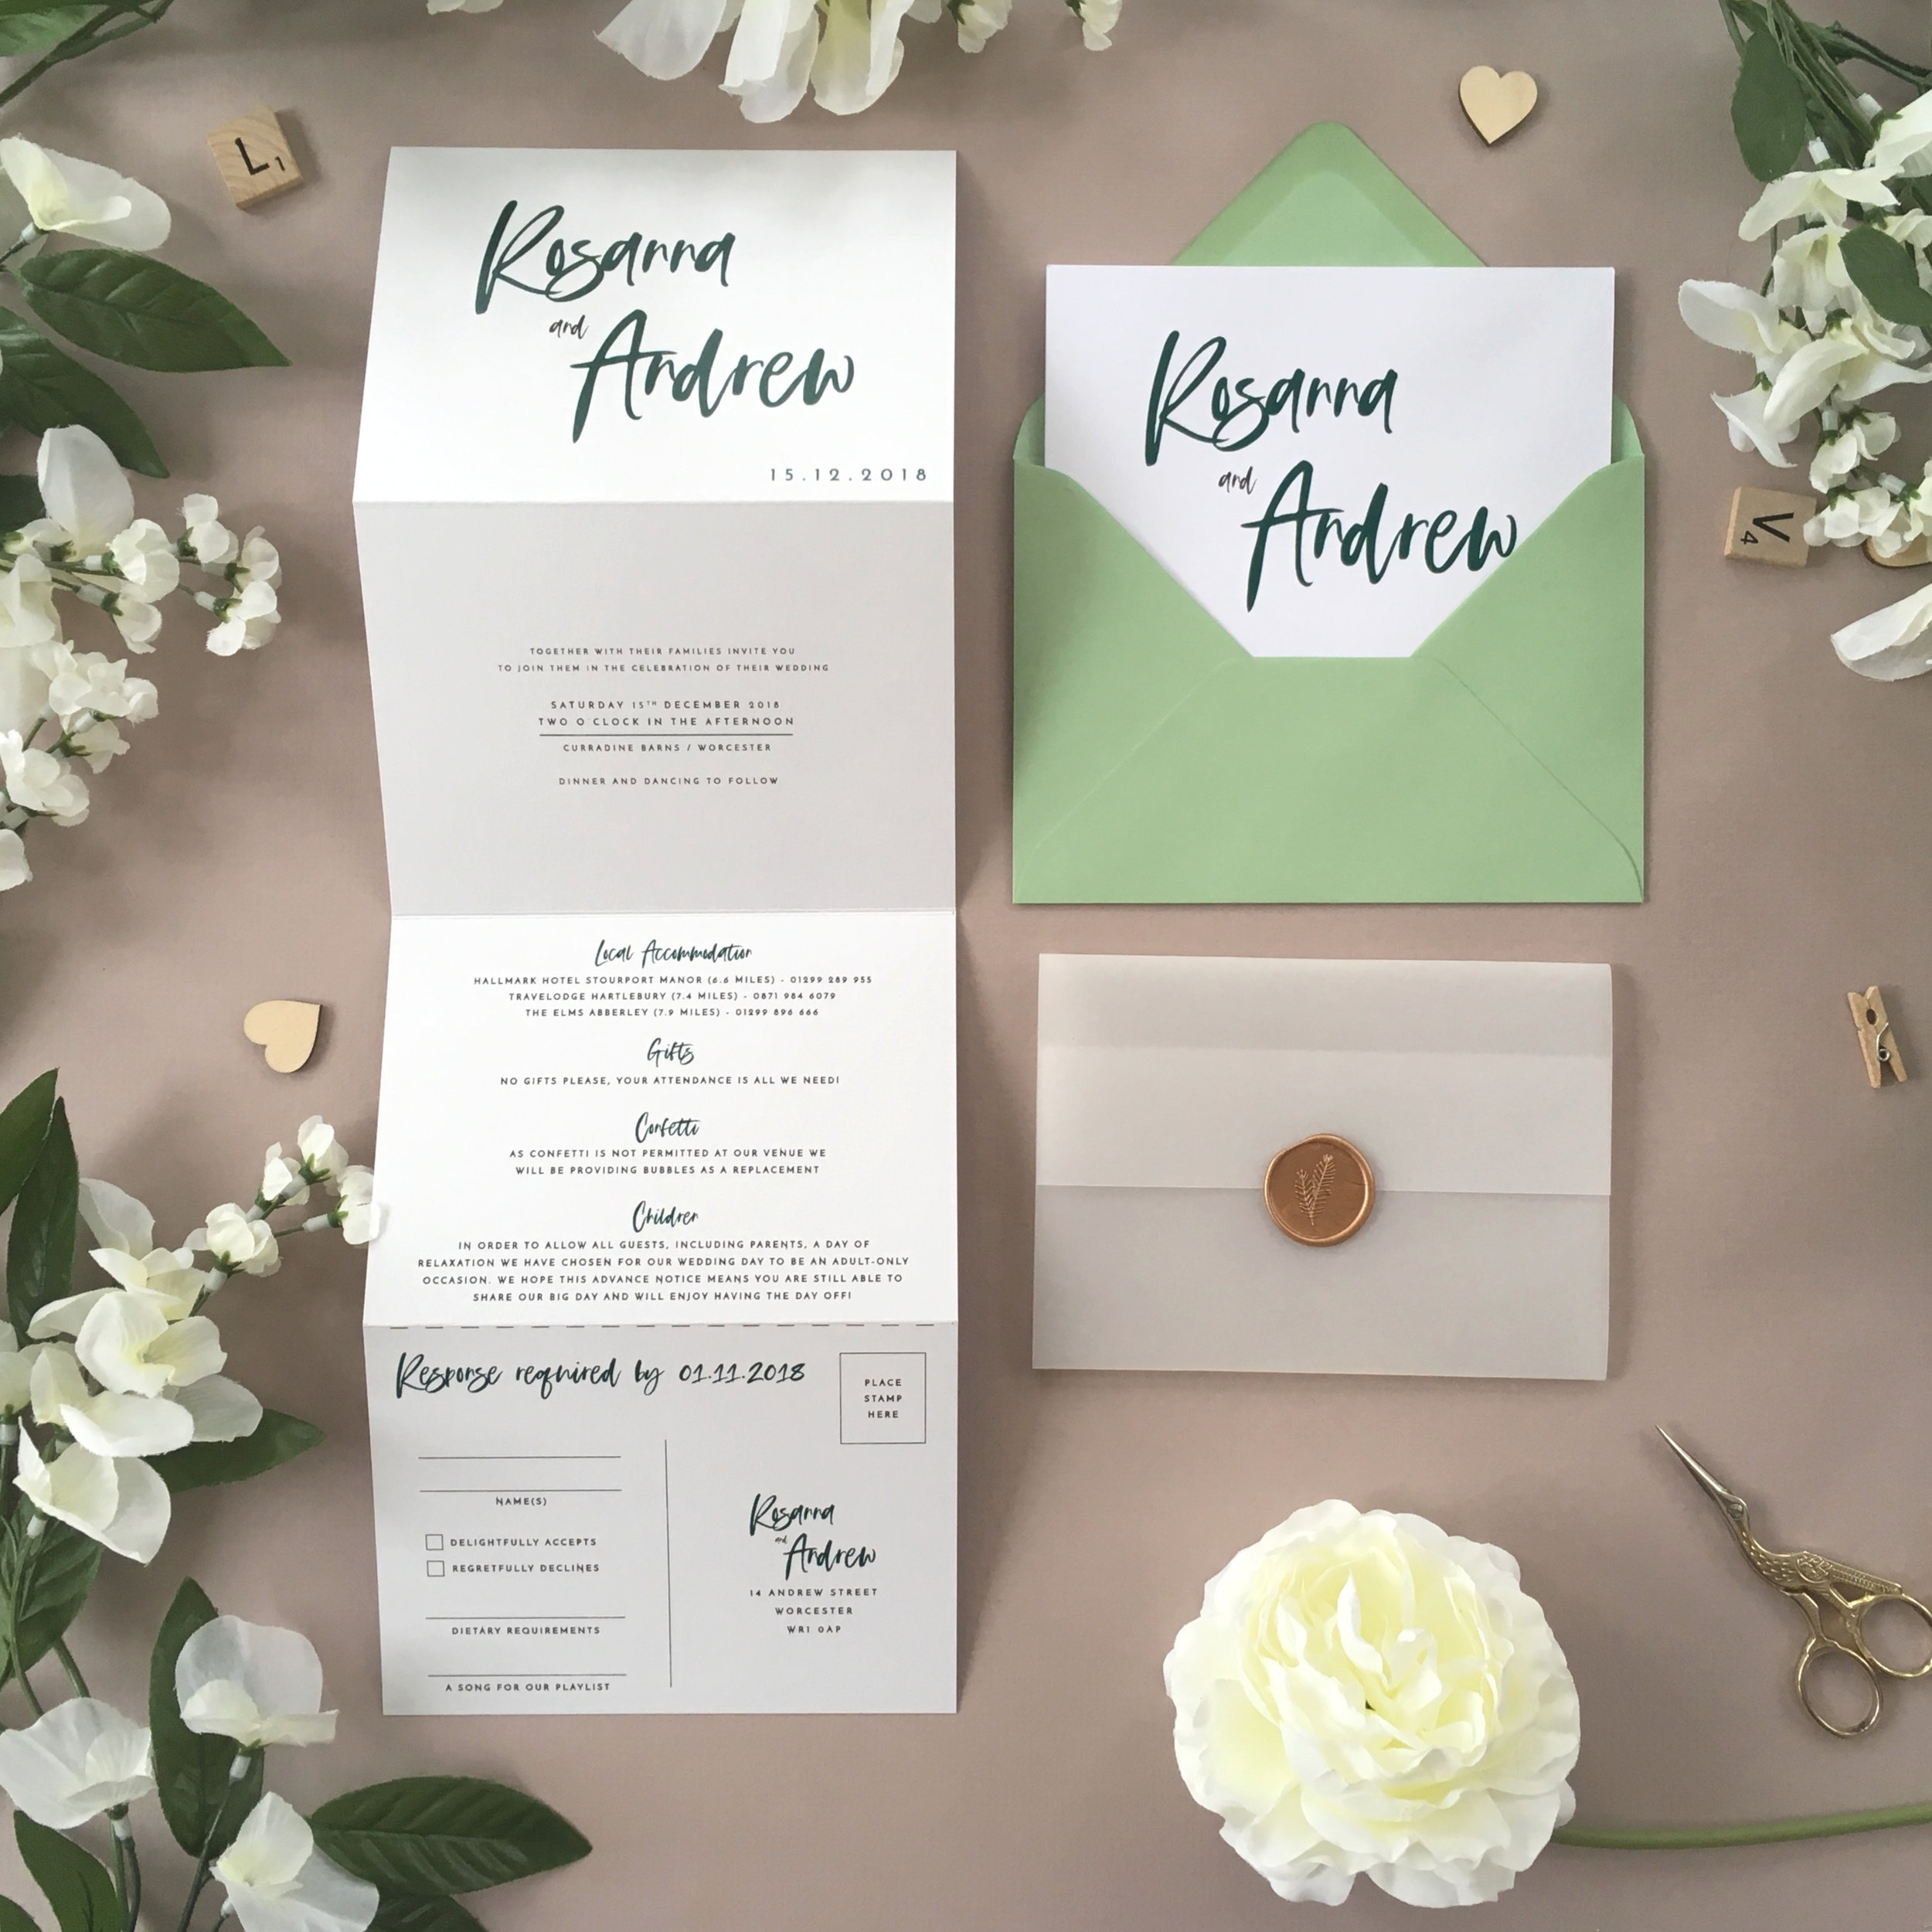 Soho - Ideally-suited to bold colours, our striking Soho collection looks great in the concertina format and, whilst shown in a deep green scheme, can easily be tailored to another scheme.Our concertina invitations are a great all-in-one solution, with a detachable RSVP at the bottom of the invitation - all guests need to do is fill in their details, put a stamp in the corner and post!Concertina invitations can be provided on an as-is basis, or can be provided bound with a vellum jacket and timeless wax seal, or tied with ribbon or twine for a lovely hand-finished approach.- Concertina Invitation - from £1.95- Ribbon or Twine - £0.40- Vellum Jacket - £0.40- Wax Seal - £0.85 (Custom engraving also available)White envelope provided as standard with coloured upgrade available.